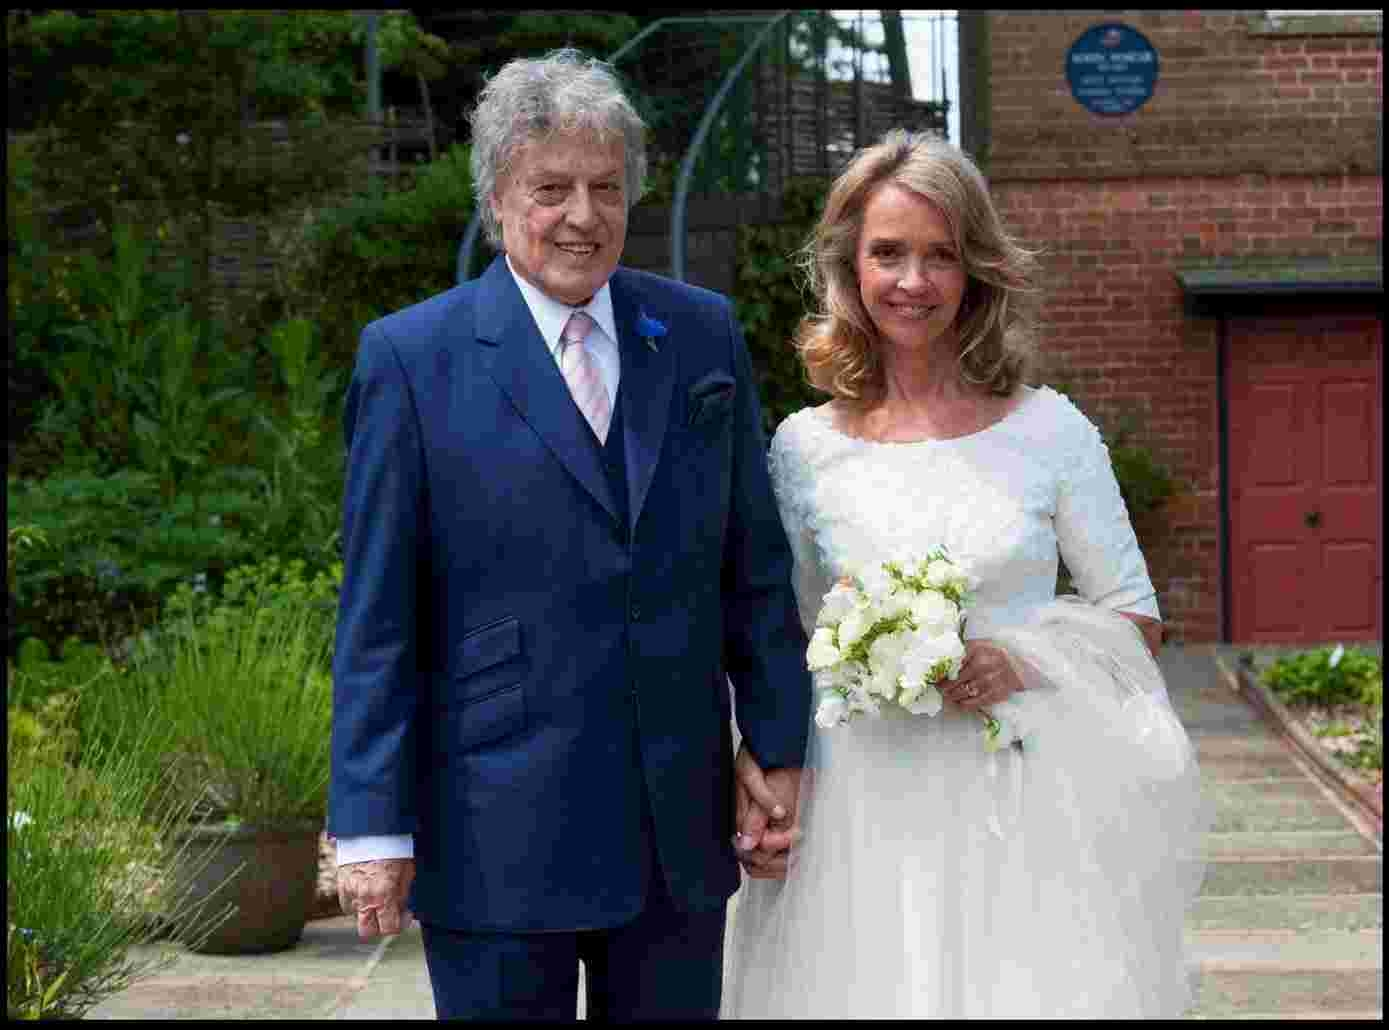 Playwright Sir Tom Stoppard marries brewery heiress Sabrina Guinness in Wimborne